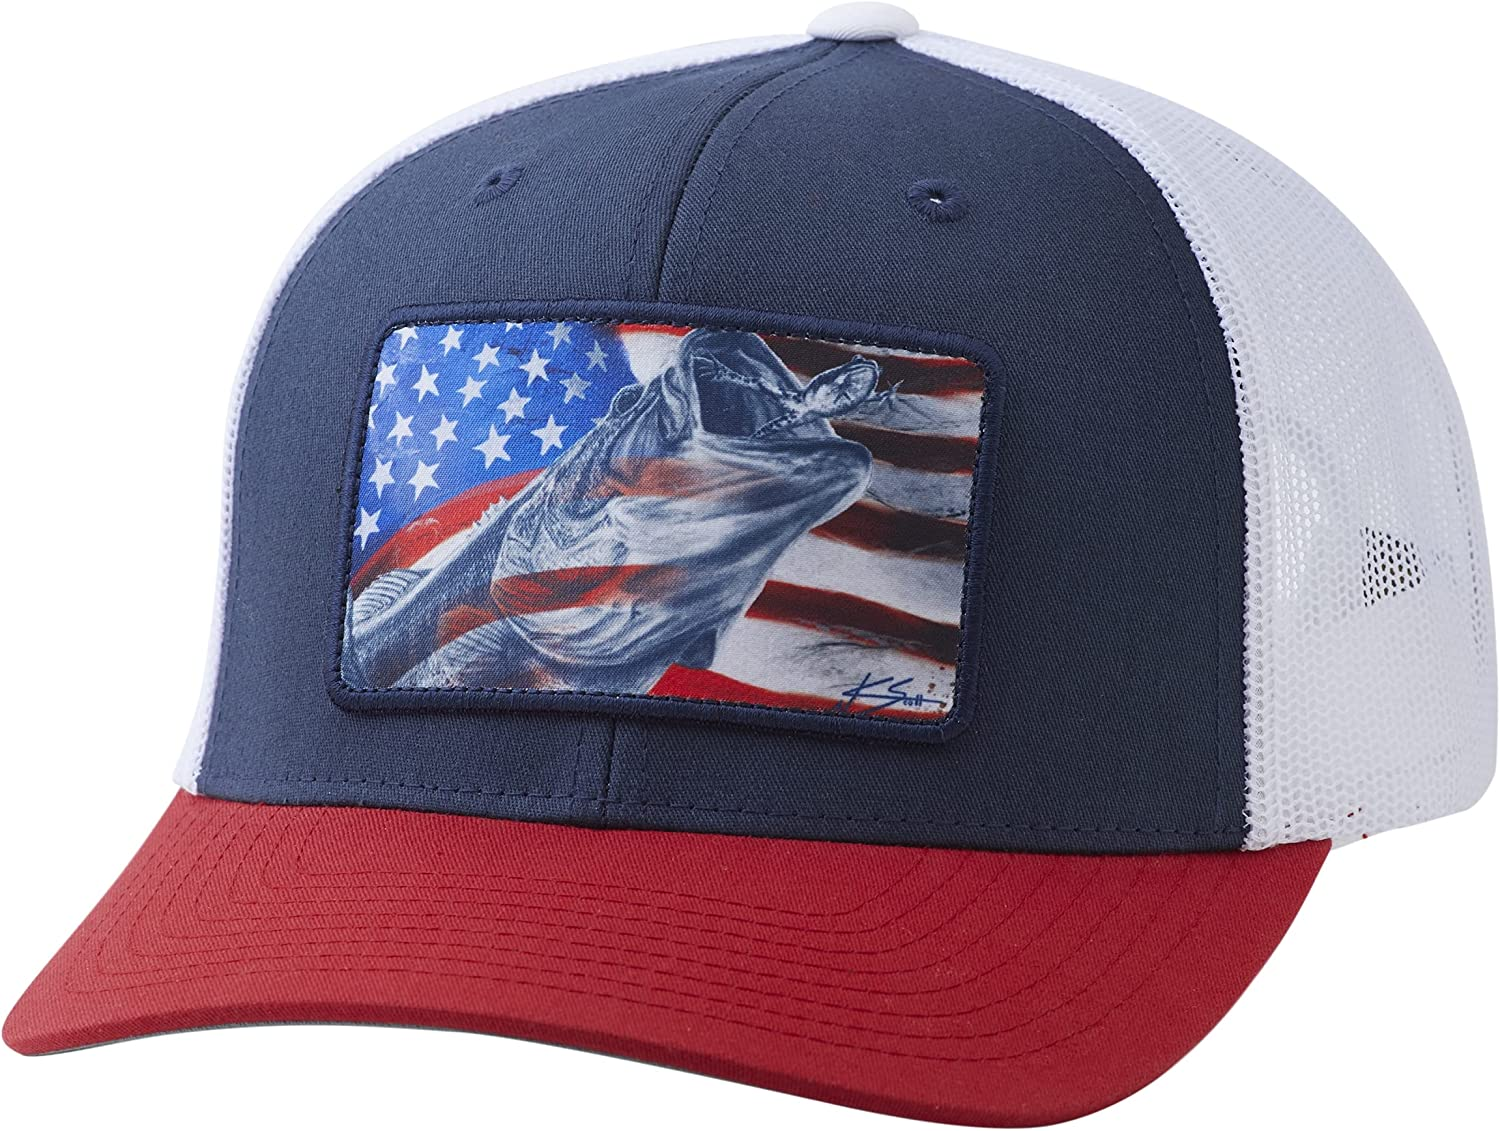 Cheap mail order specialty store HUK Men's Free shipping / New Americana Hat Trucker Frogger